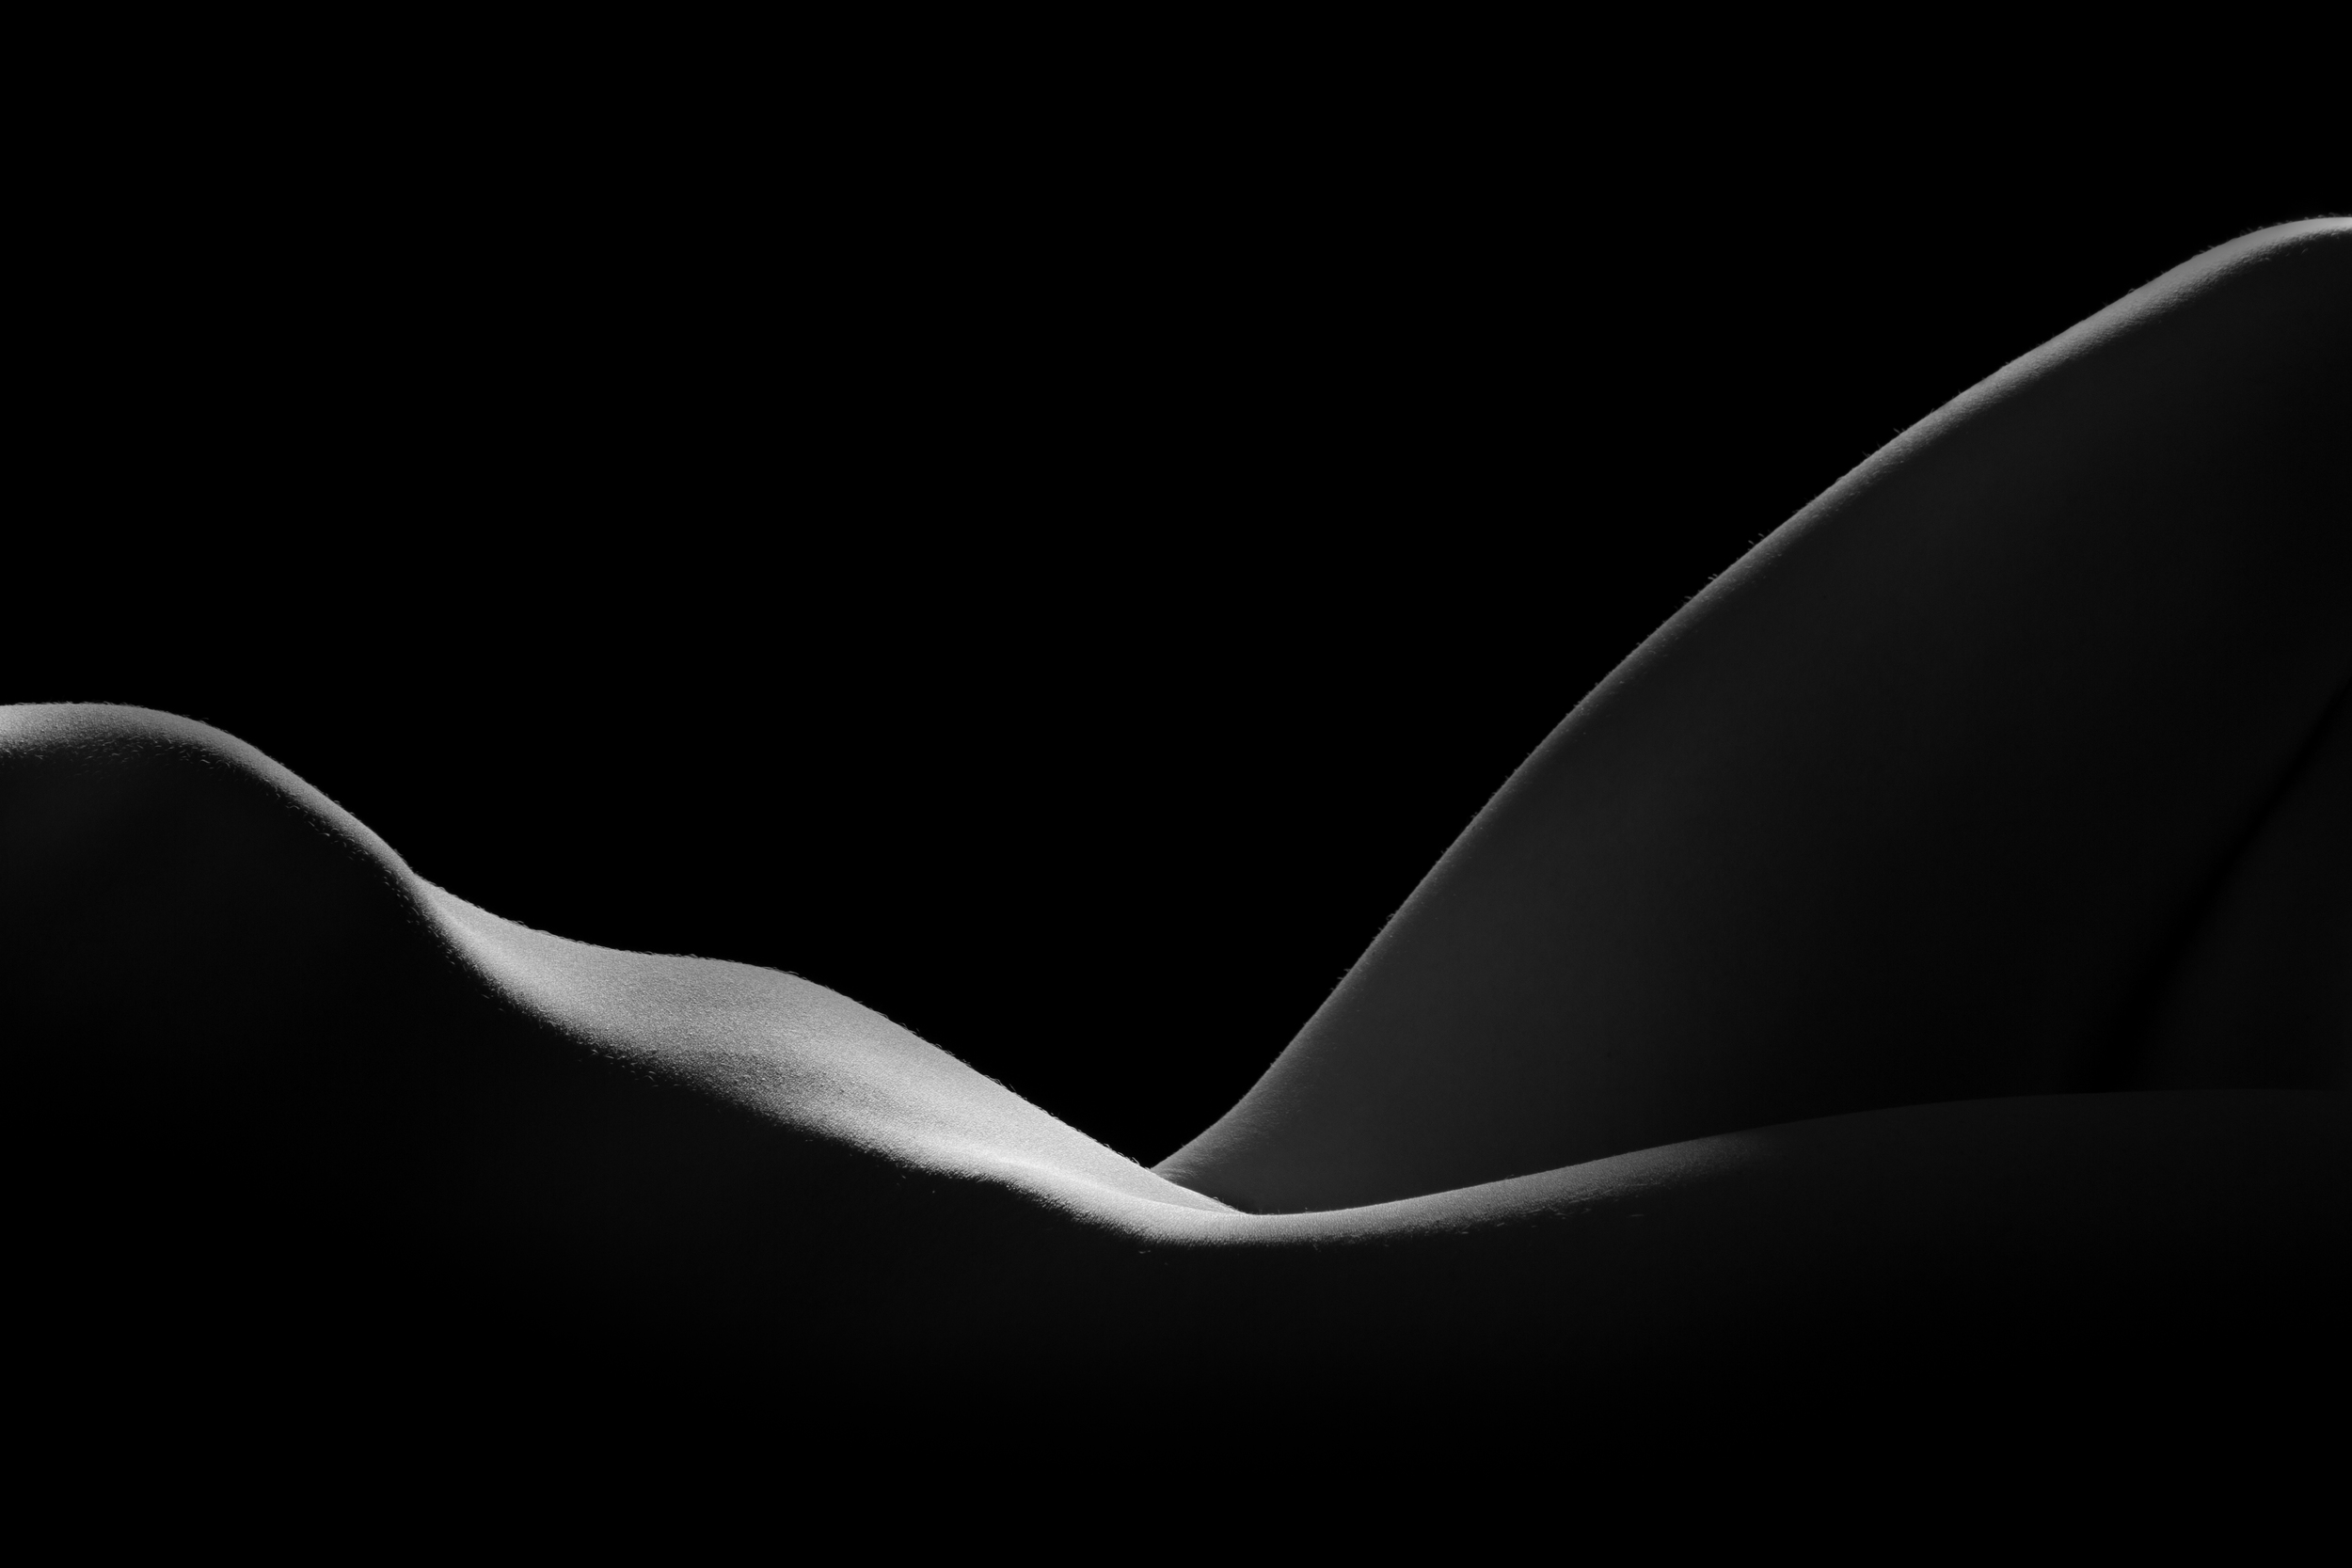 Title: Forme 01 Medium:Archival Pigment Print Dimension: 20 × 30 in (50.8 cm × 76.2 cm) Edition: 1 of 3, with 1 AP